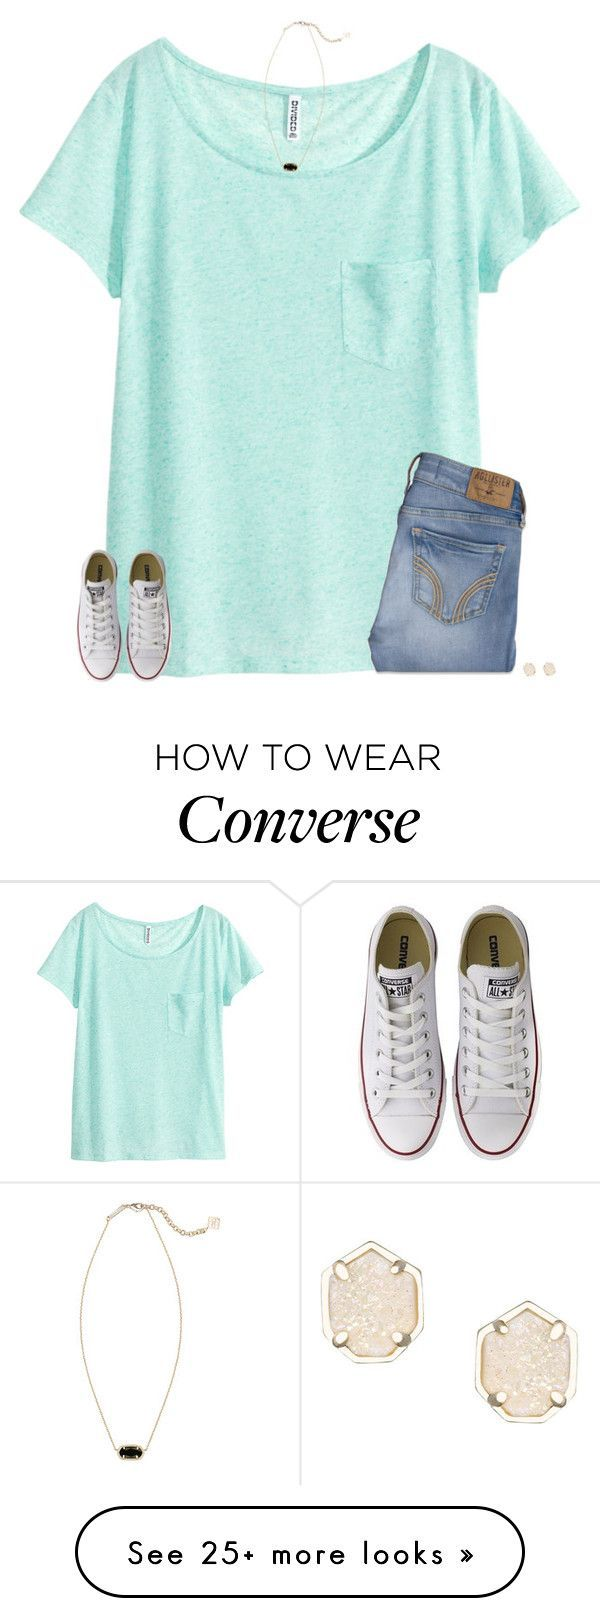 """""""goodmorning"""" by secfashion13 on Polyvore featuring H&M, Hollister Co., Kendra Scott and Converse"""